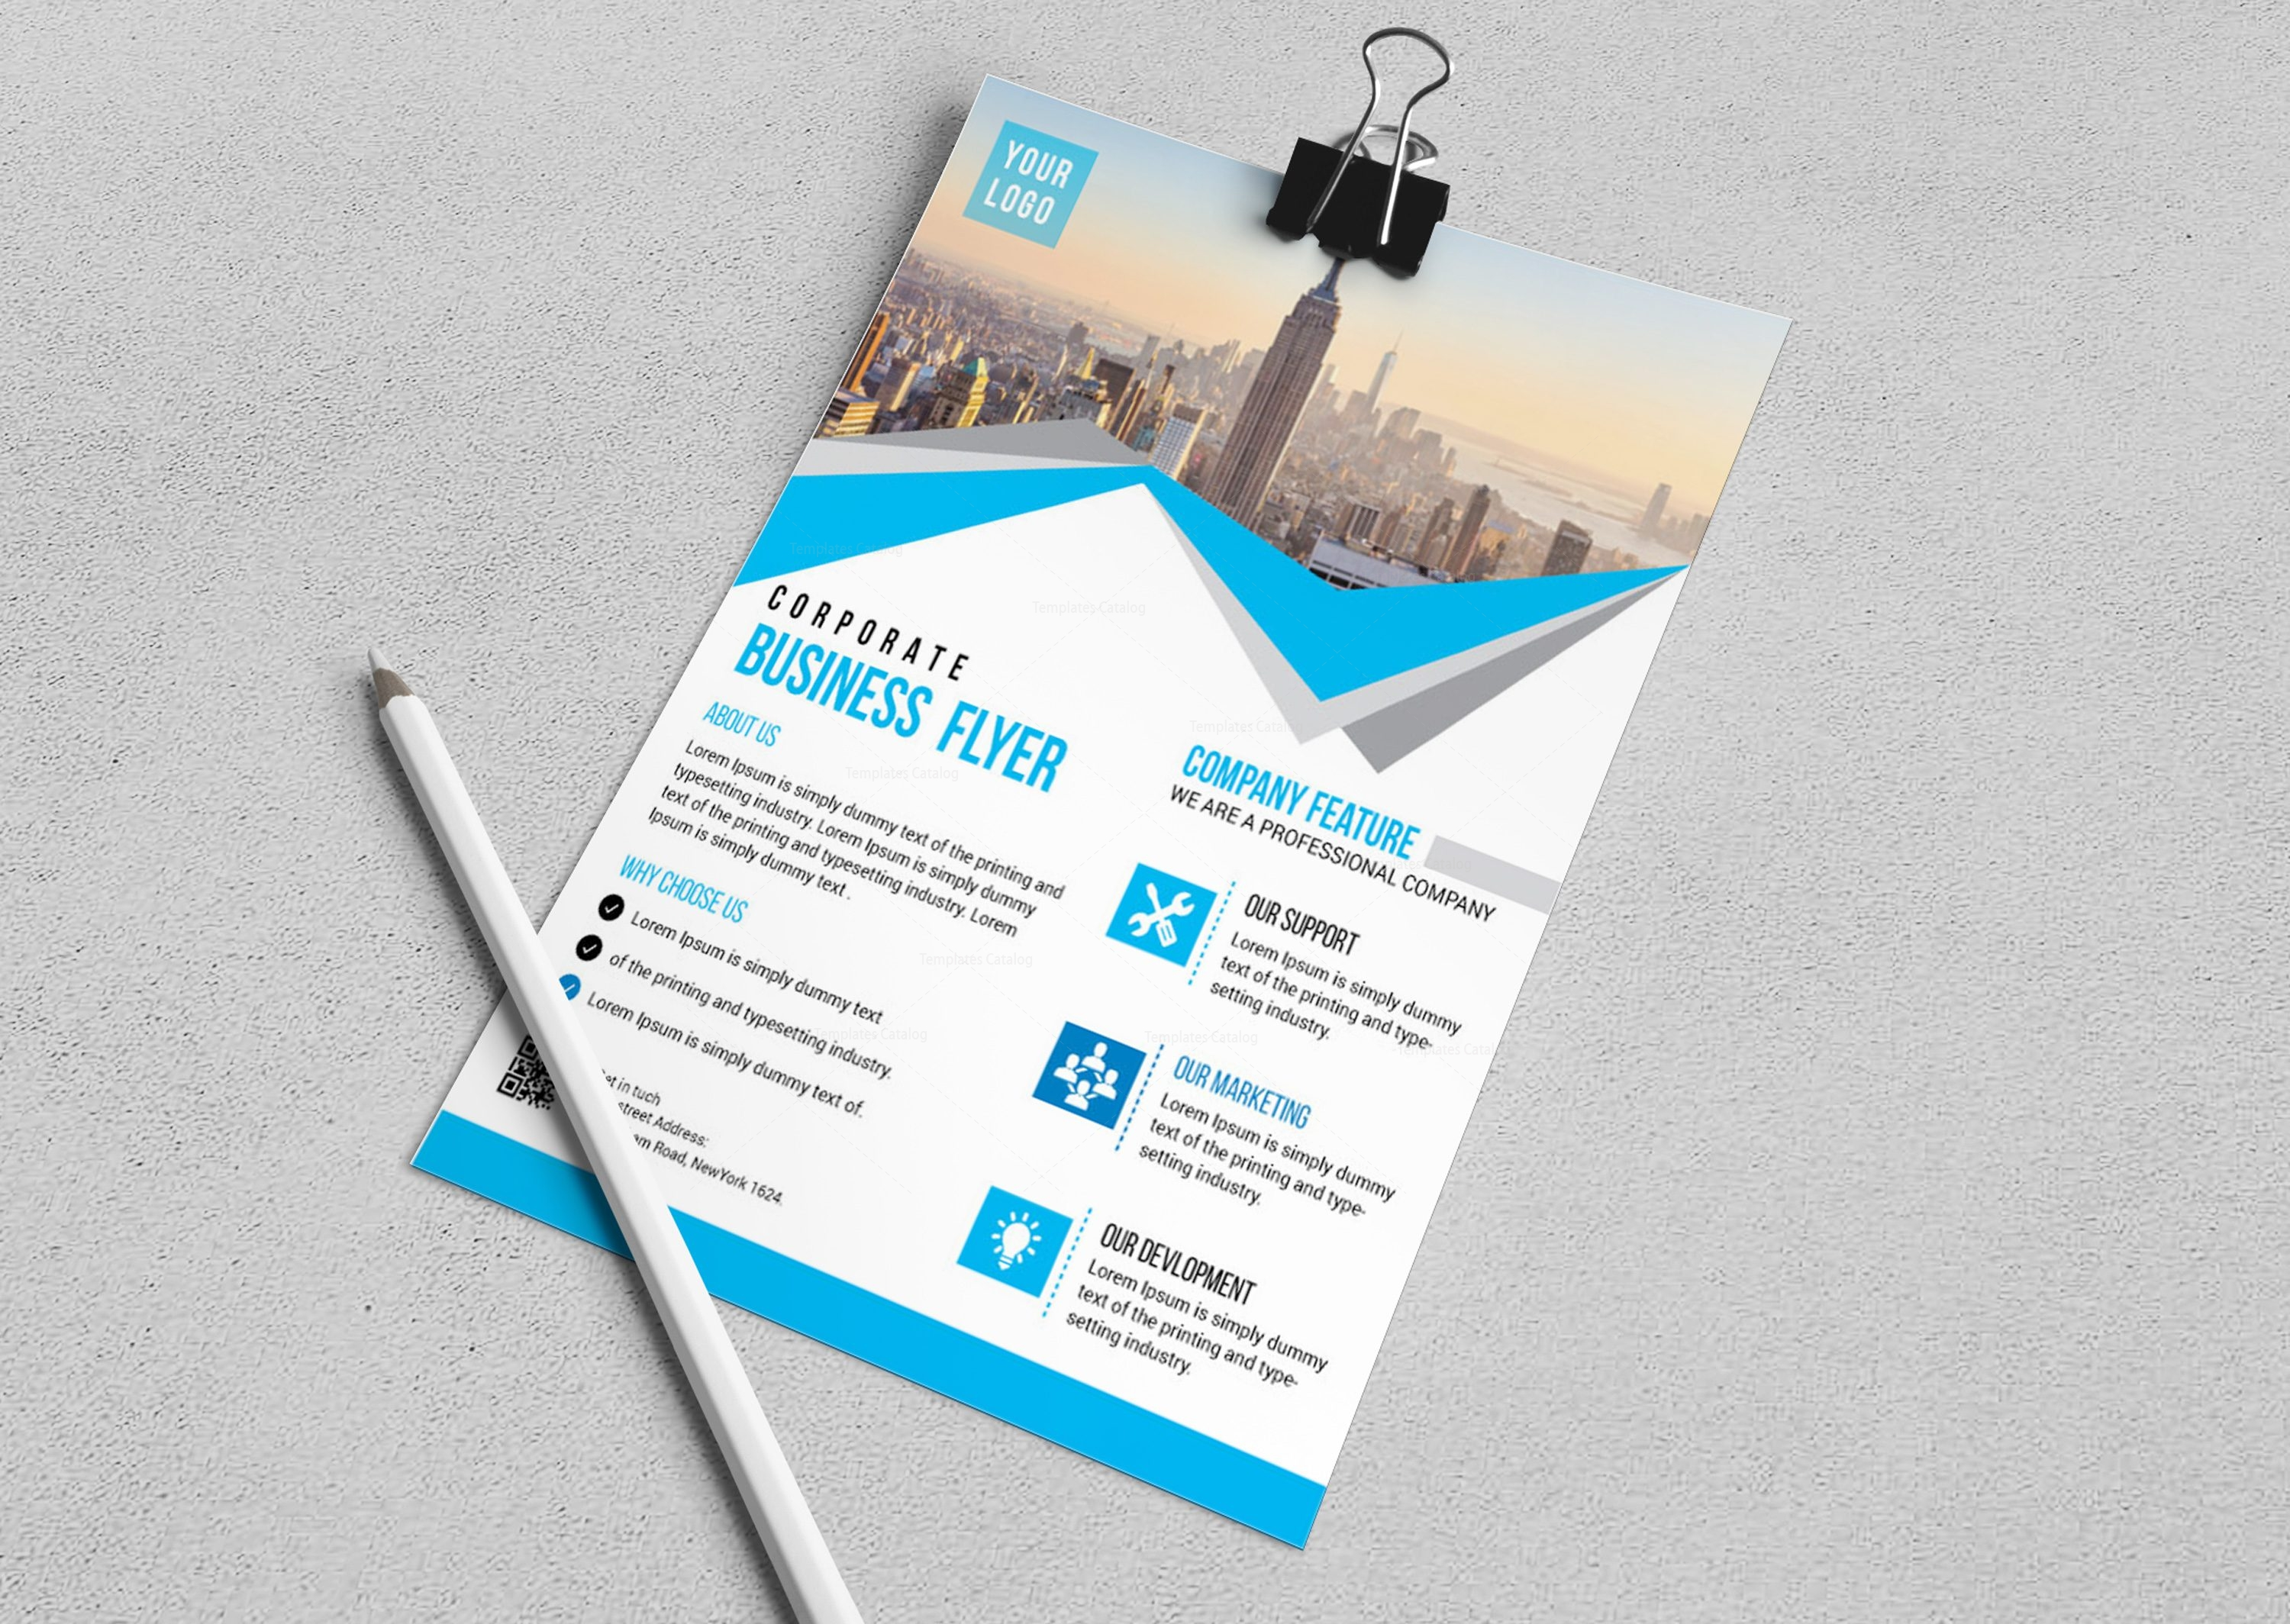 Riverside modern business flyer design template 001683 template riverside modern business flyer design template accmission Choice Image